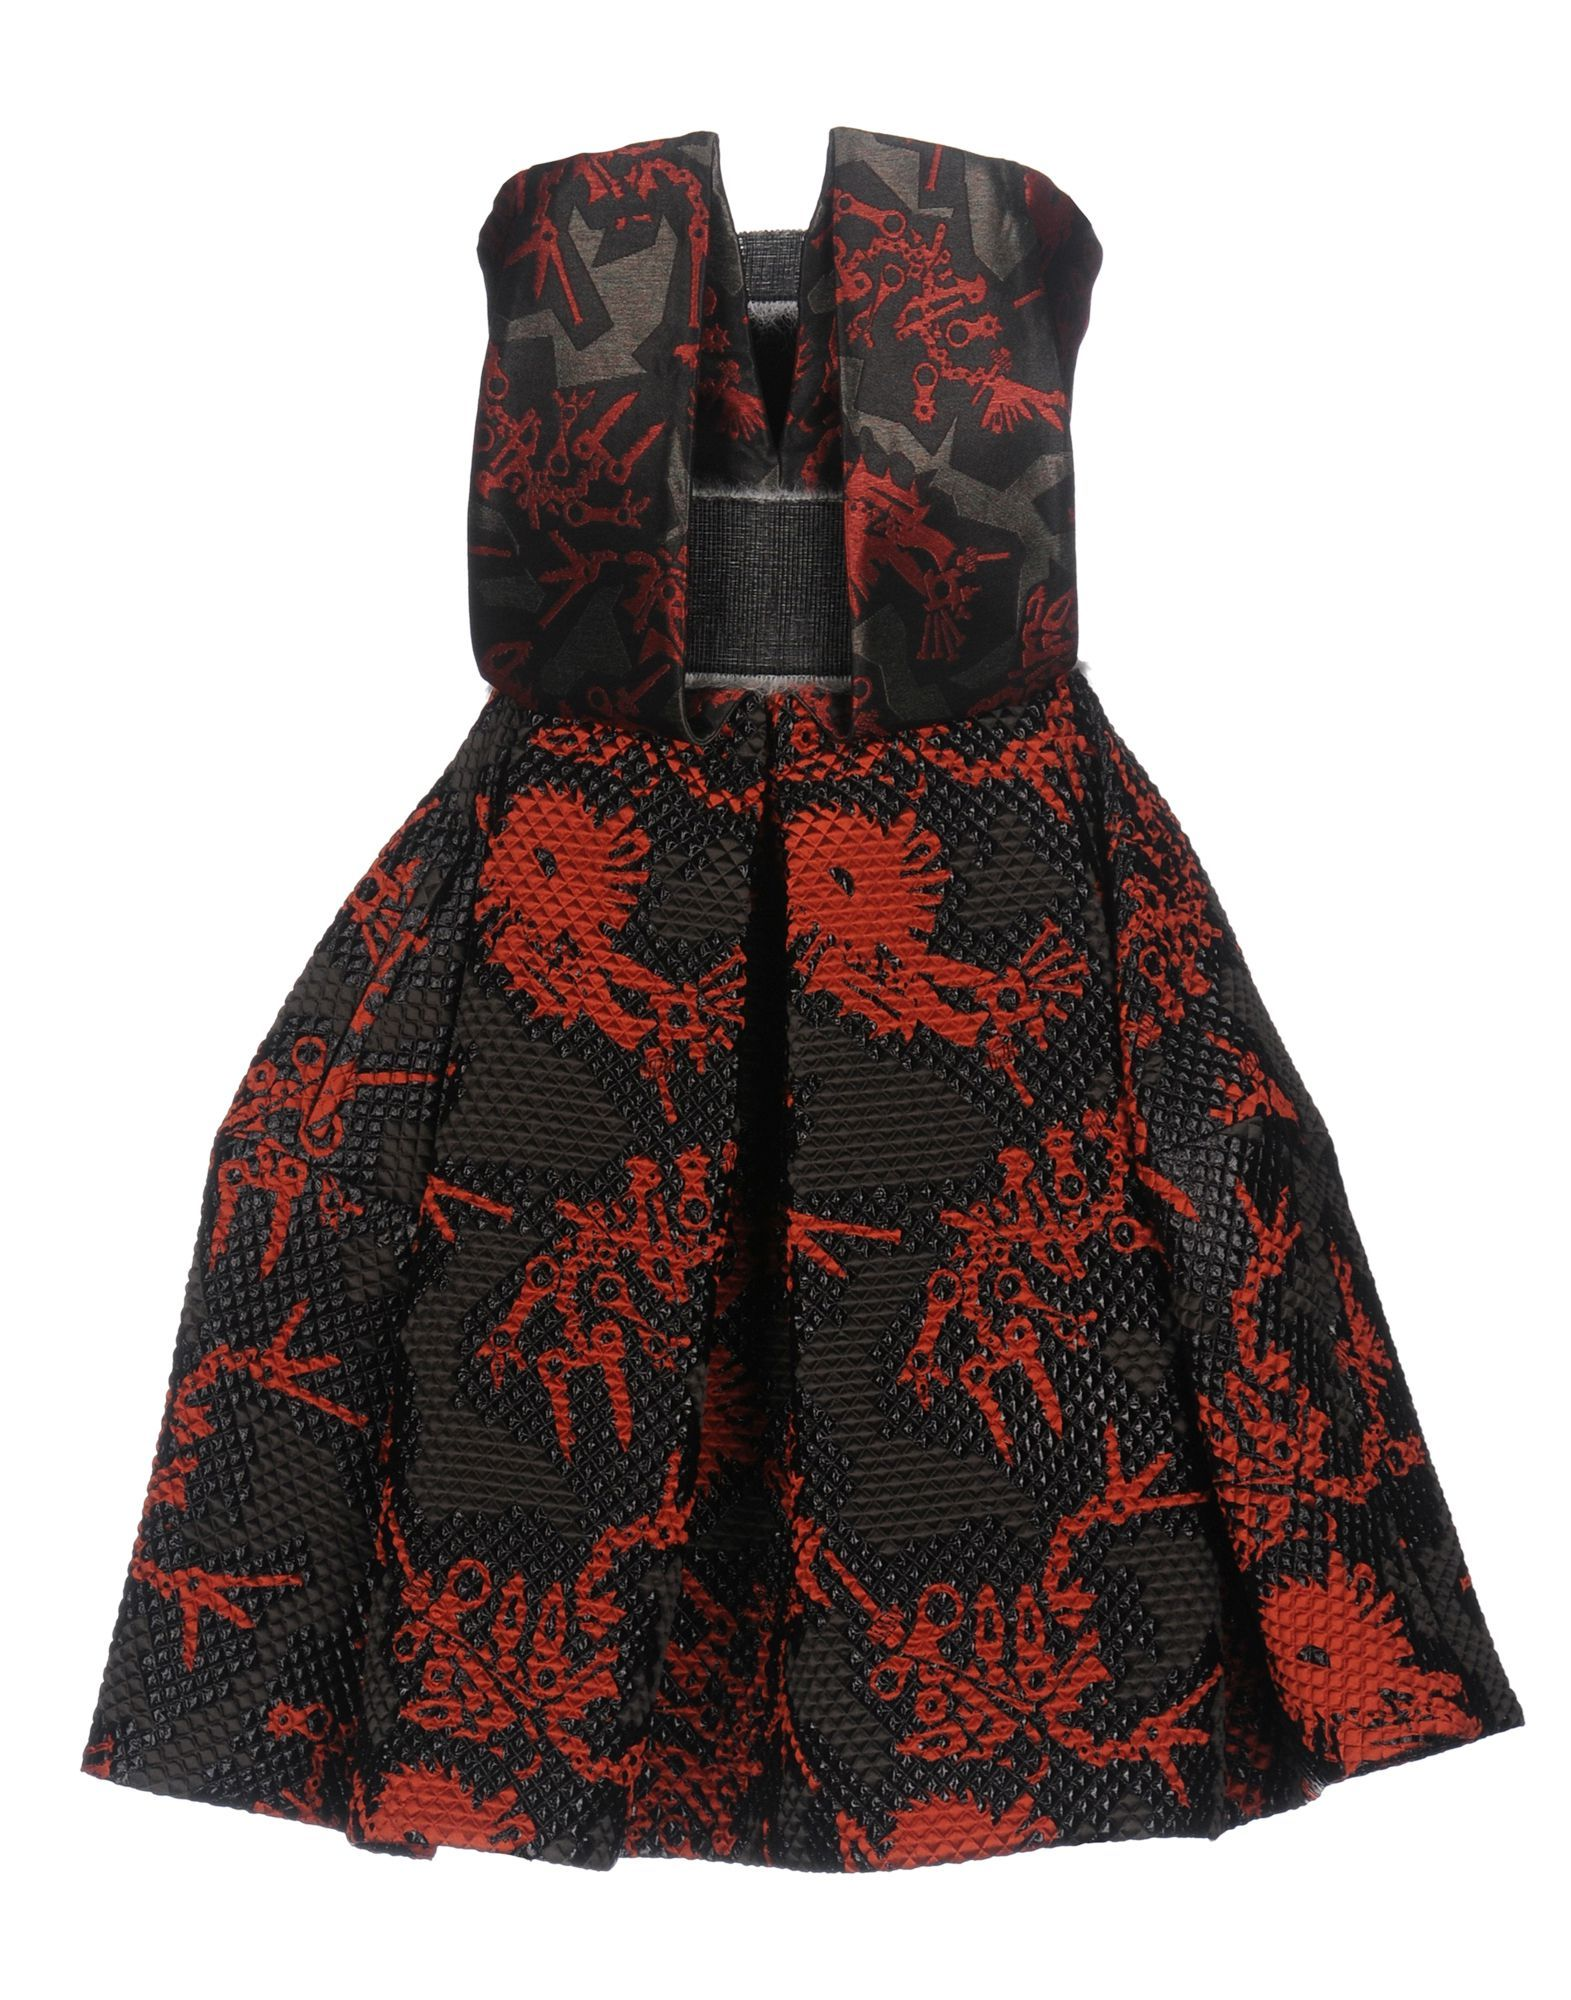 Kenzo Black Jacquard Dress